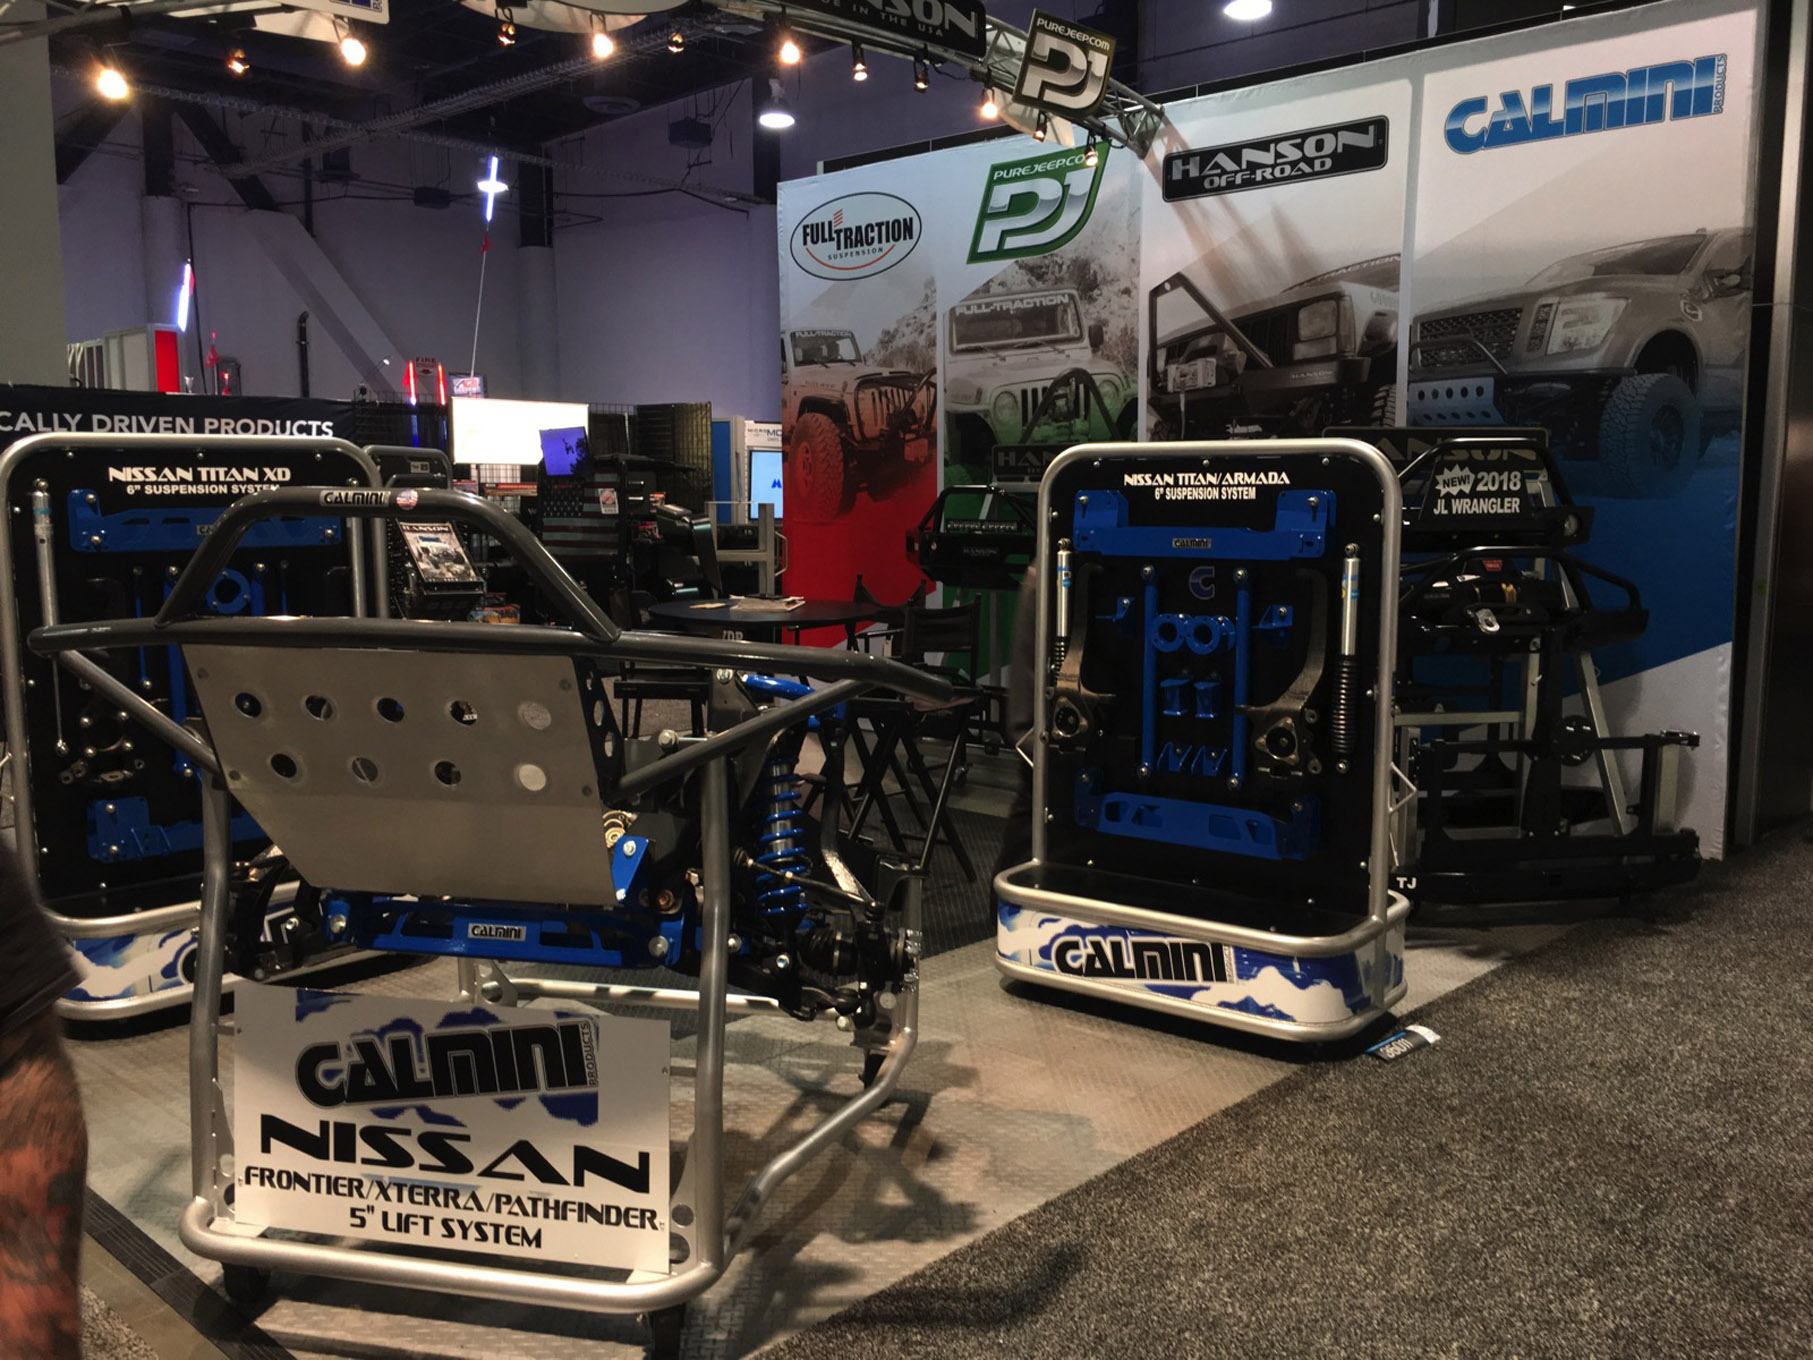 068 sema 2017 day 1 south upper hall gallery photos